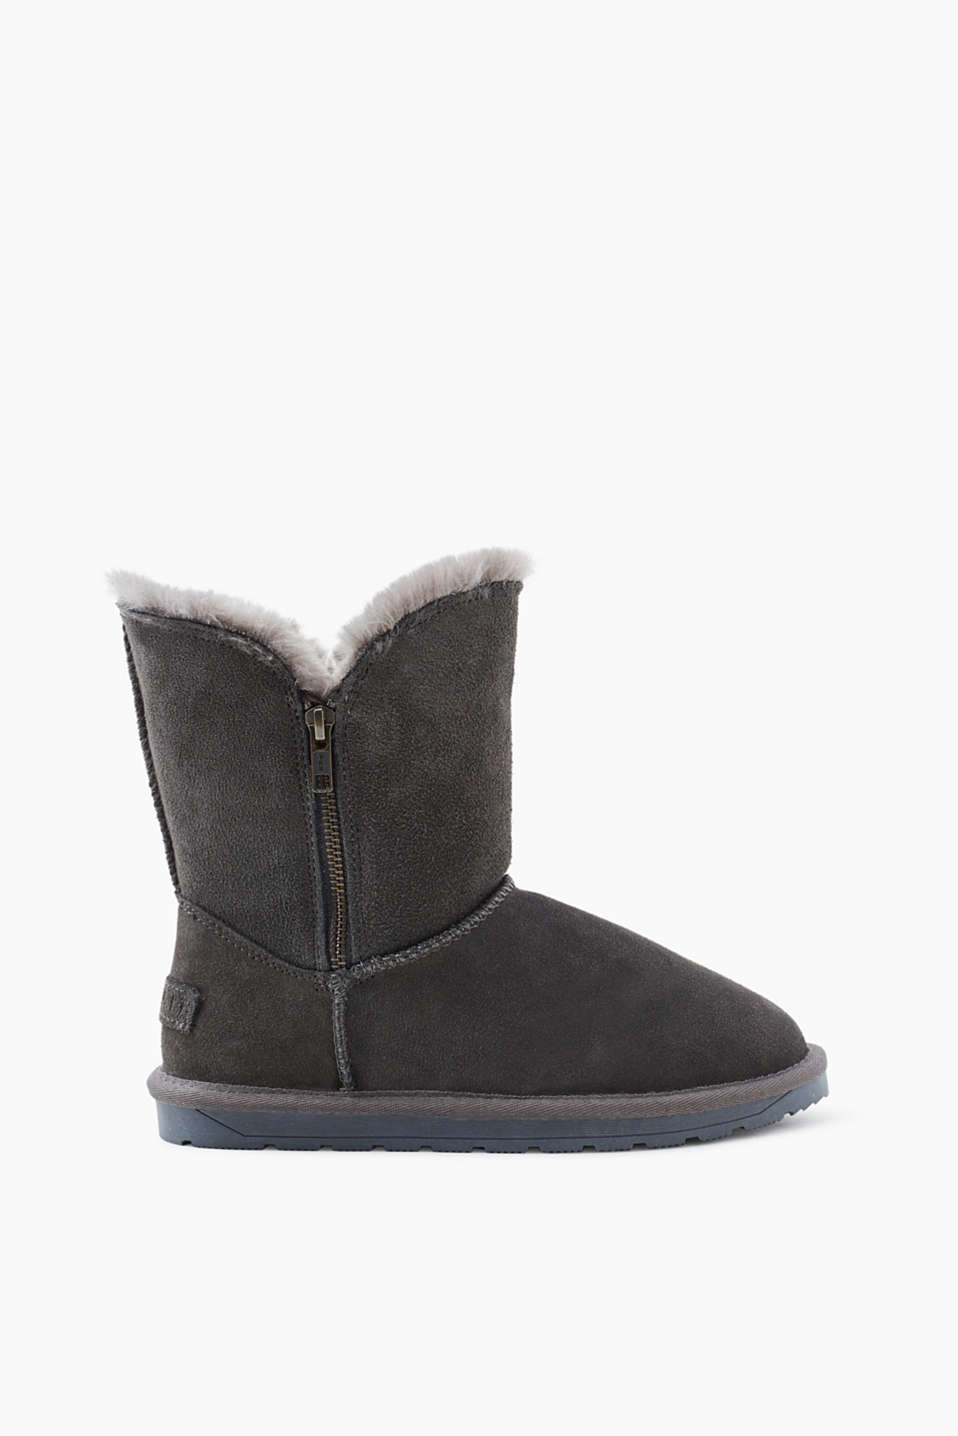 Casually zip up at the sides: suede boots with a warming faux fur lining and a tread sole!